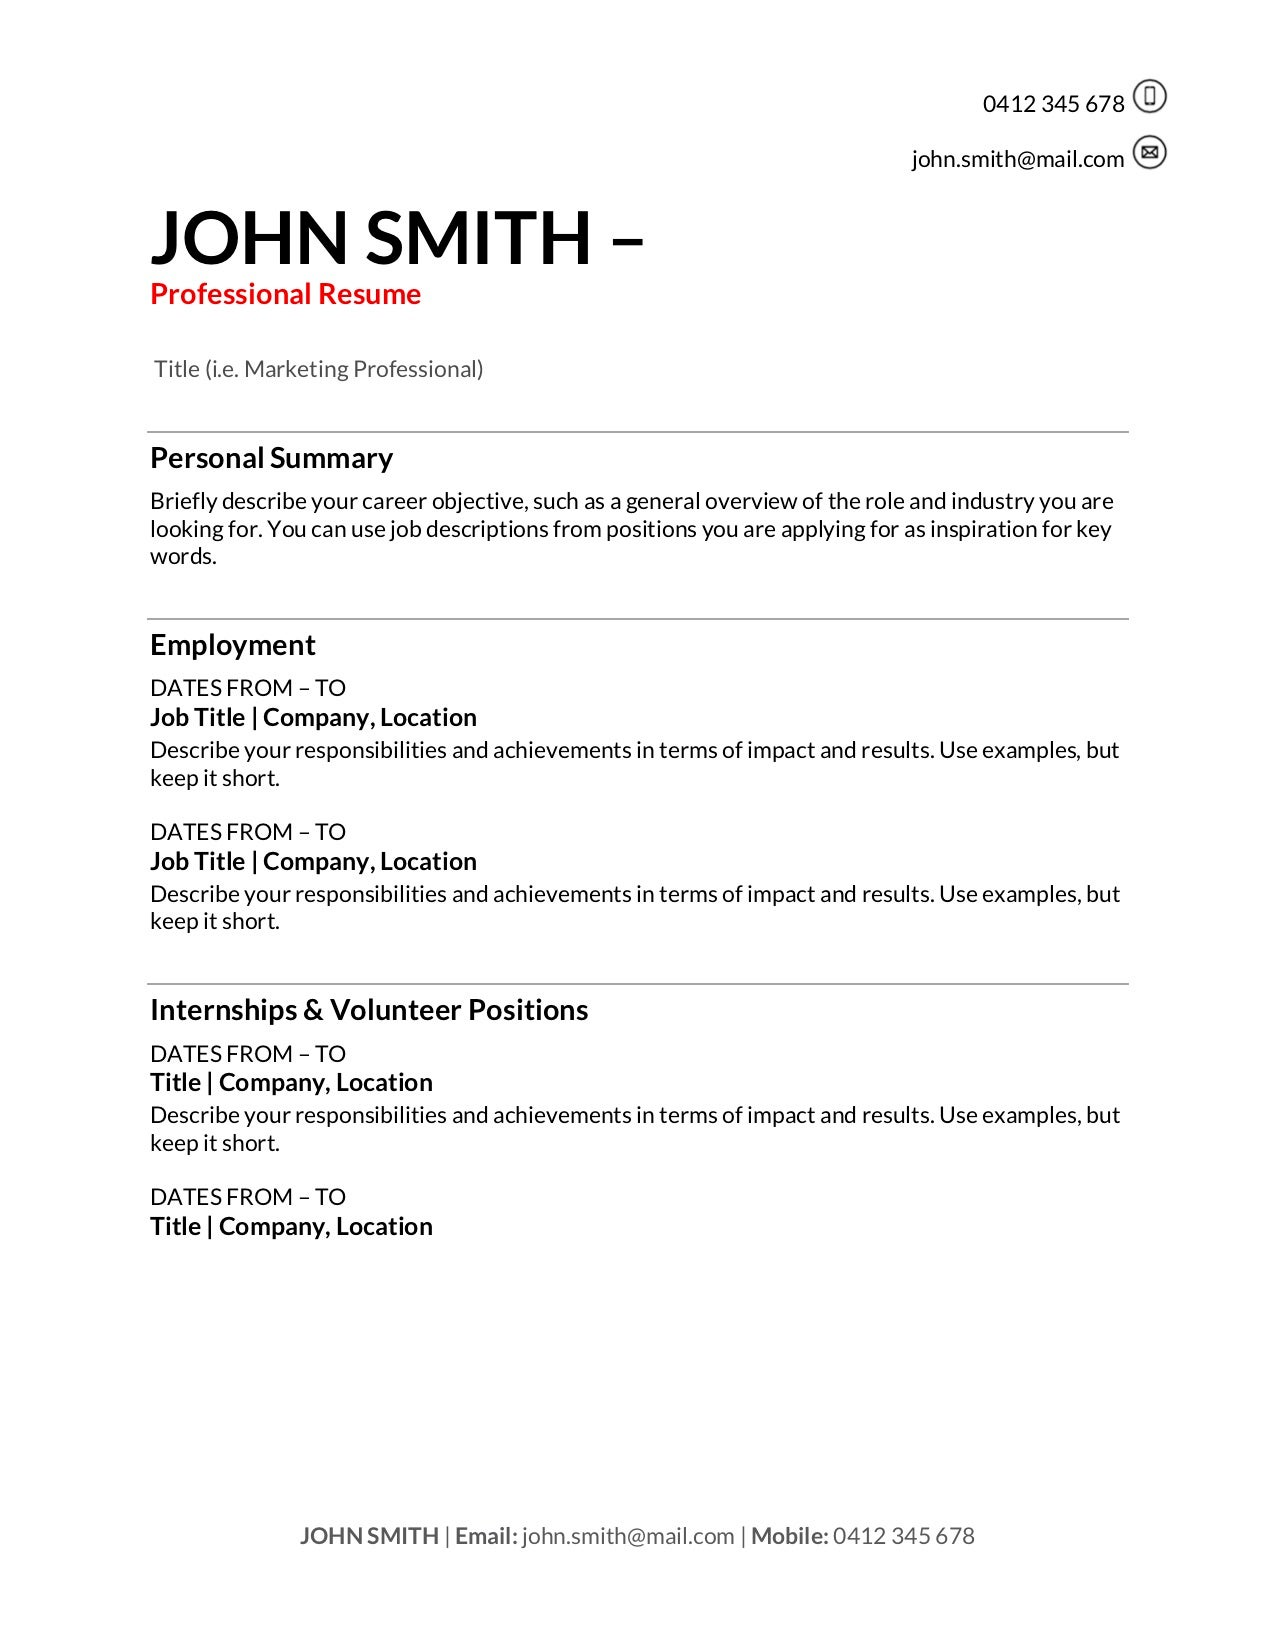 free resume templates to write in training au job sample format police writing services Resume Job Resume Sample Format